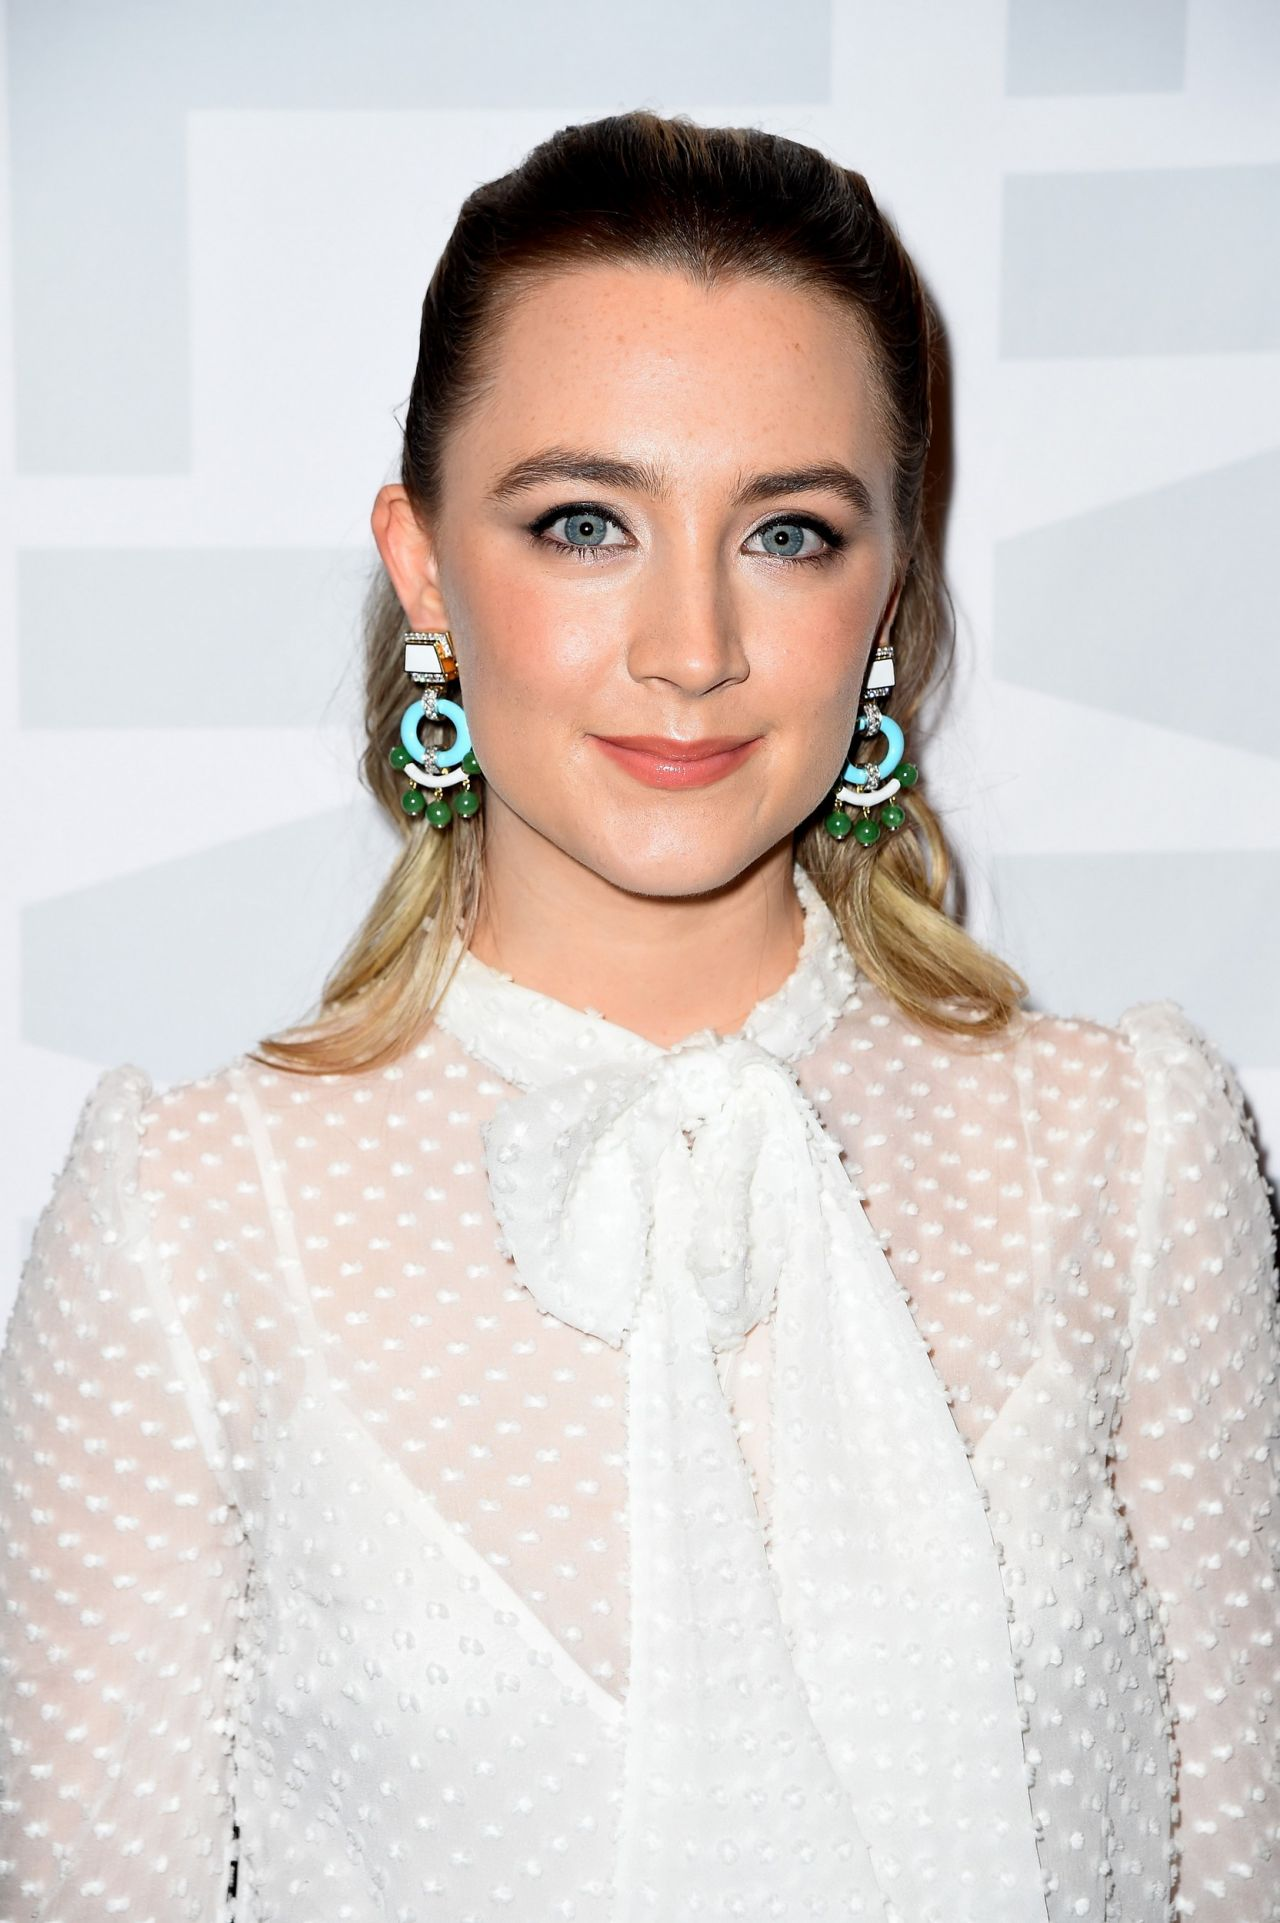 saoirse-ronan-brooklyn-screening-in-the-museum-of-modern-art-in-new-york-city-1